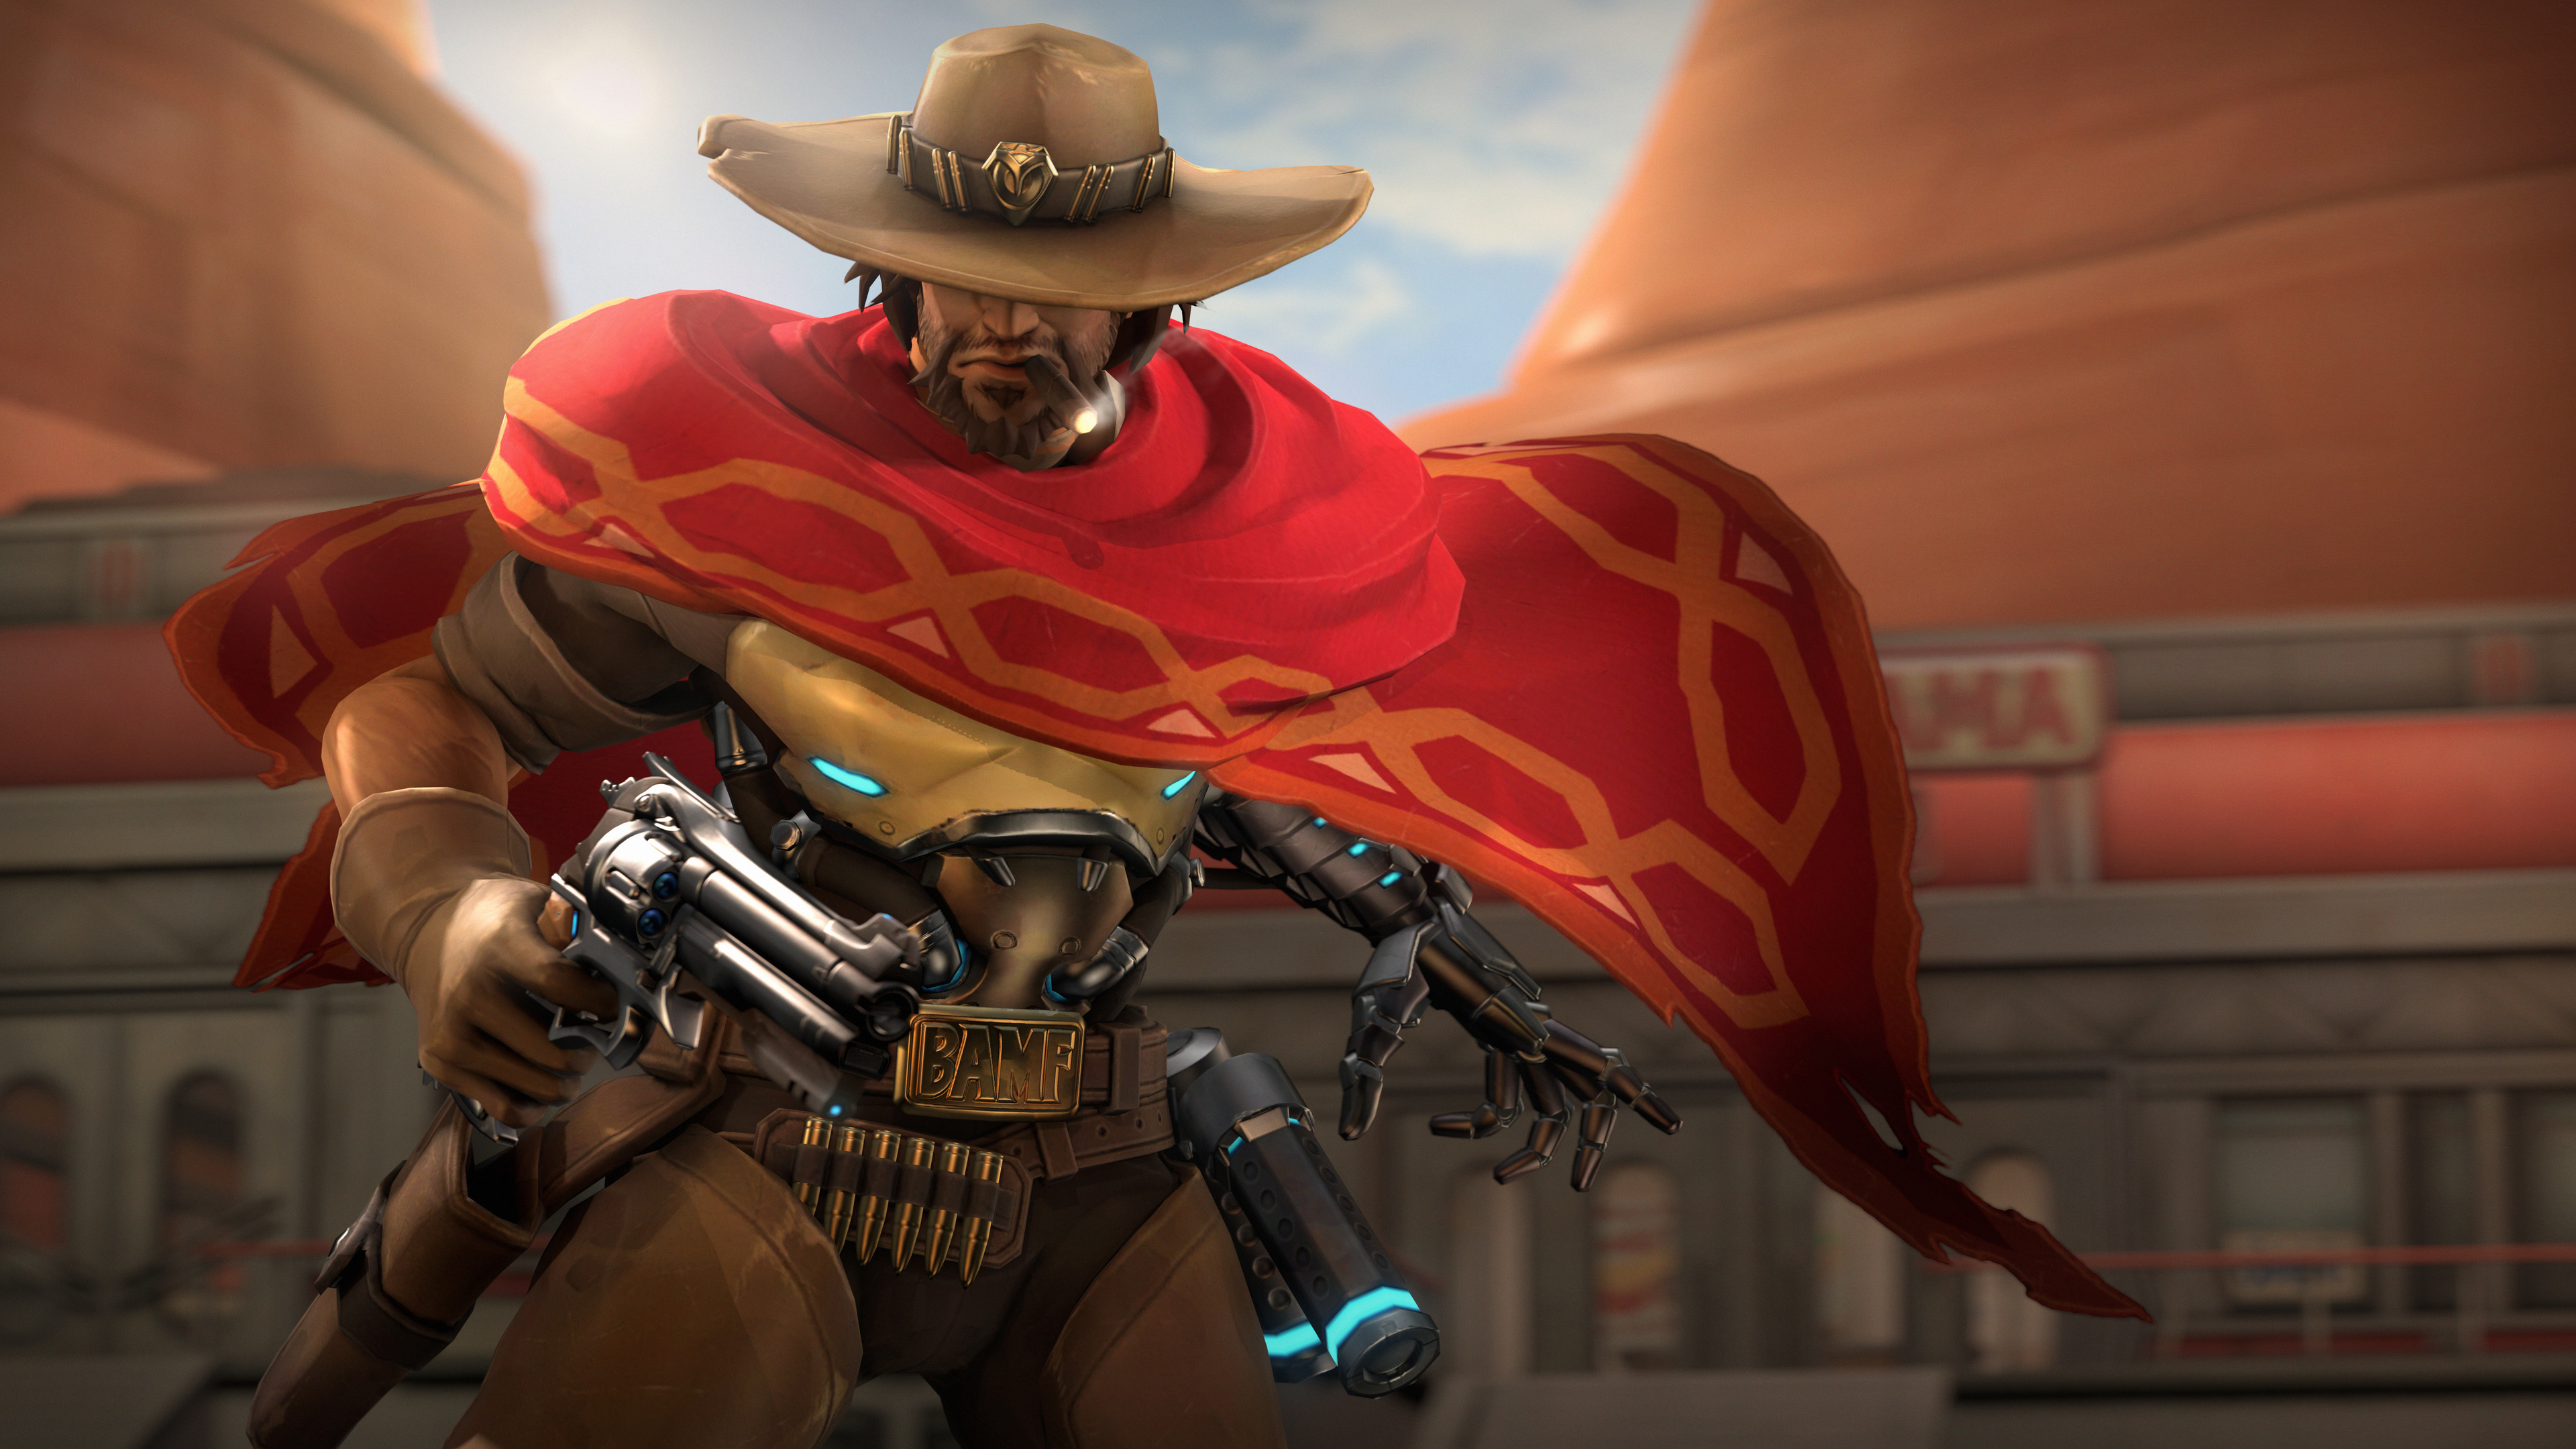 mccree overwatch 5k 1542494908 - Mccree Overwatch 5k - xbox games wallpapers, ps games wallpapers, pc games wallpapers, overwatch wallpapers, mccree overwatch wallpapers, hd-wallpapers, games wallpapers, deviantart wallpapers, 5k wallpapers, 4k-wallpapers, 2018 games wallpapers